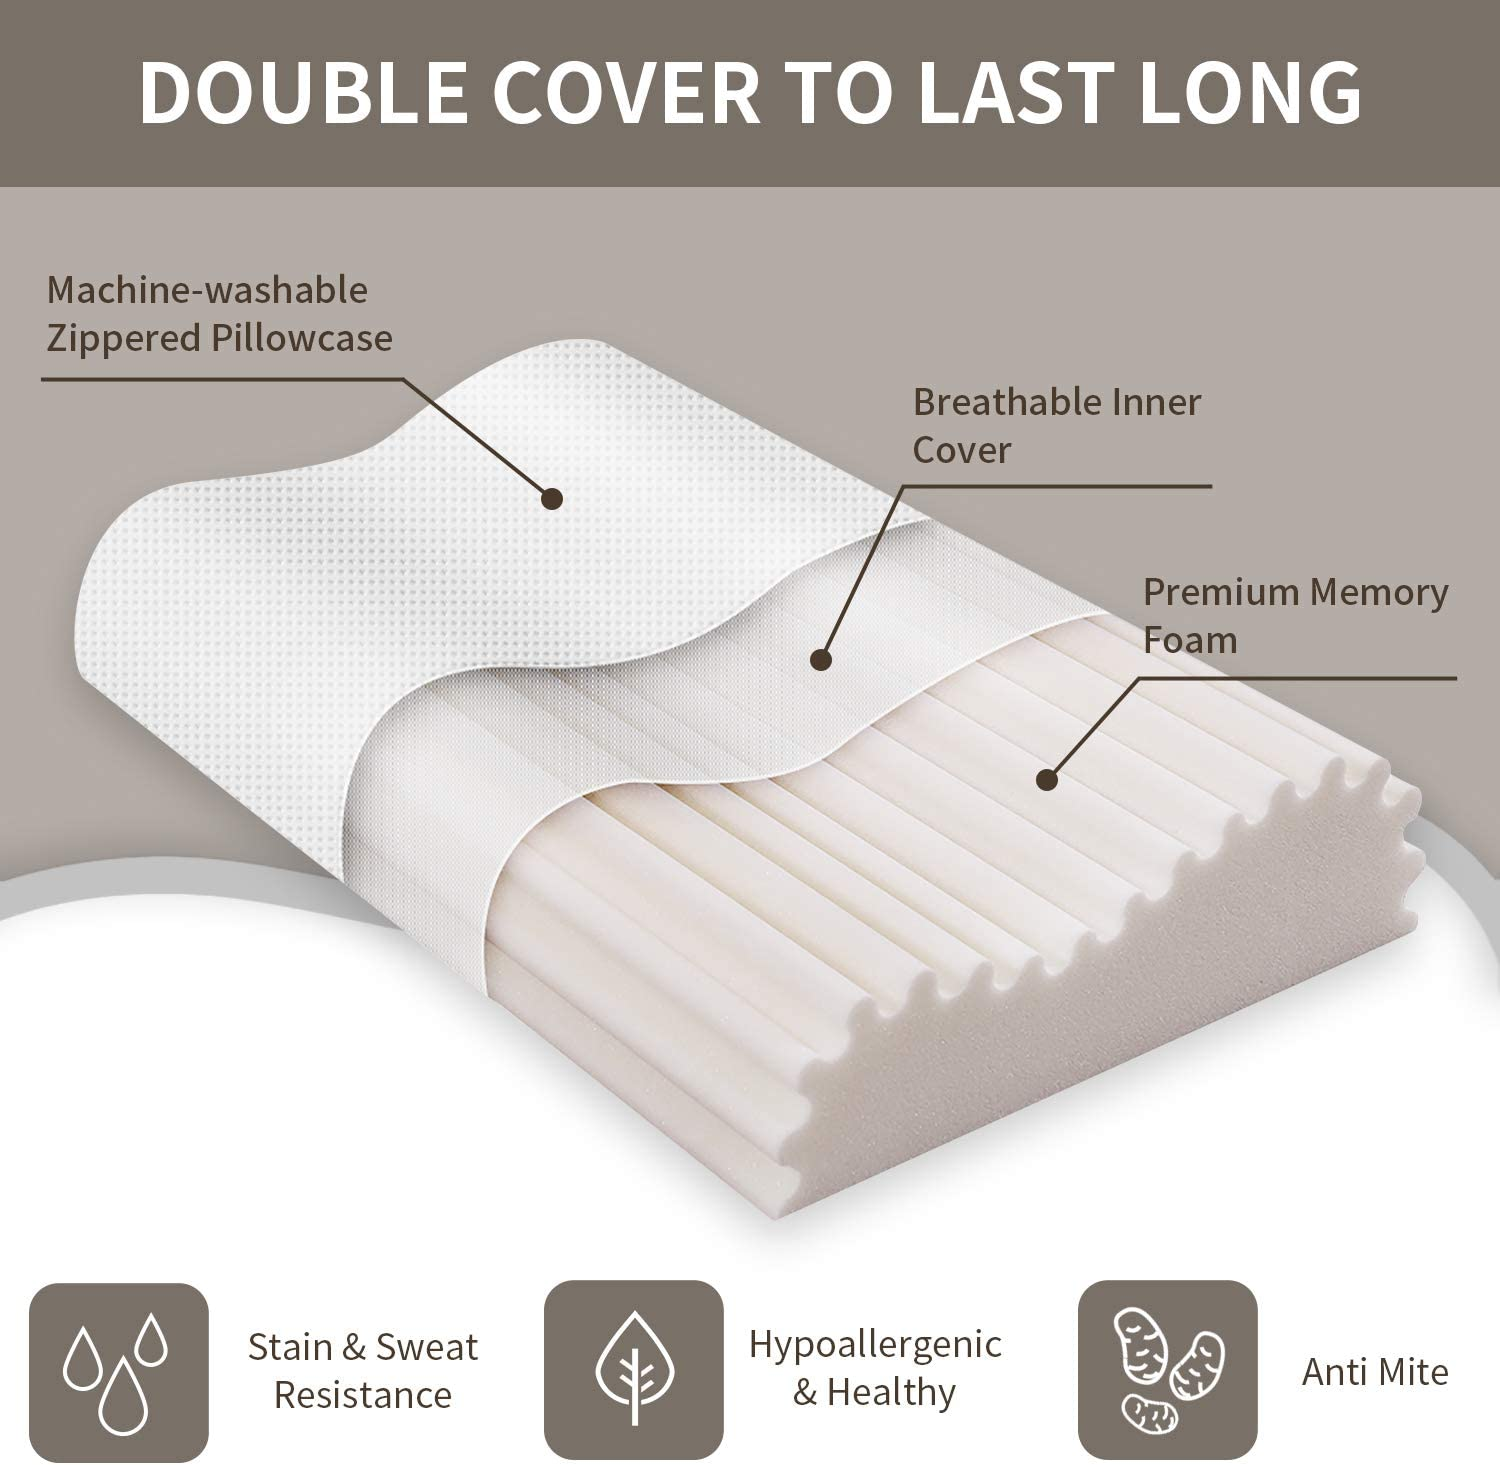 Cervical Contour Pillow for Neck Pain Swilow Memory Foam Pillow Bamboo Charcoal Pillow for Sleeping Firm, Standard Size Neck Support Pillow for Side Sleeper Pillow Sleeping with Free Pillowcase